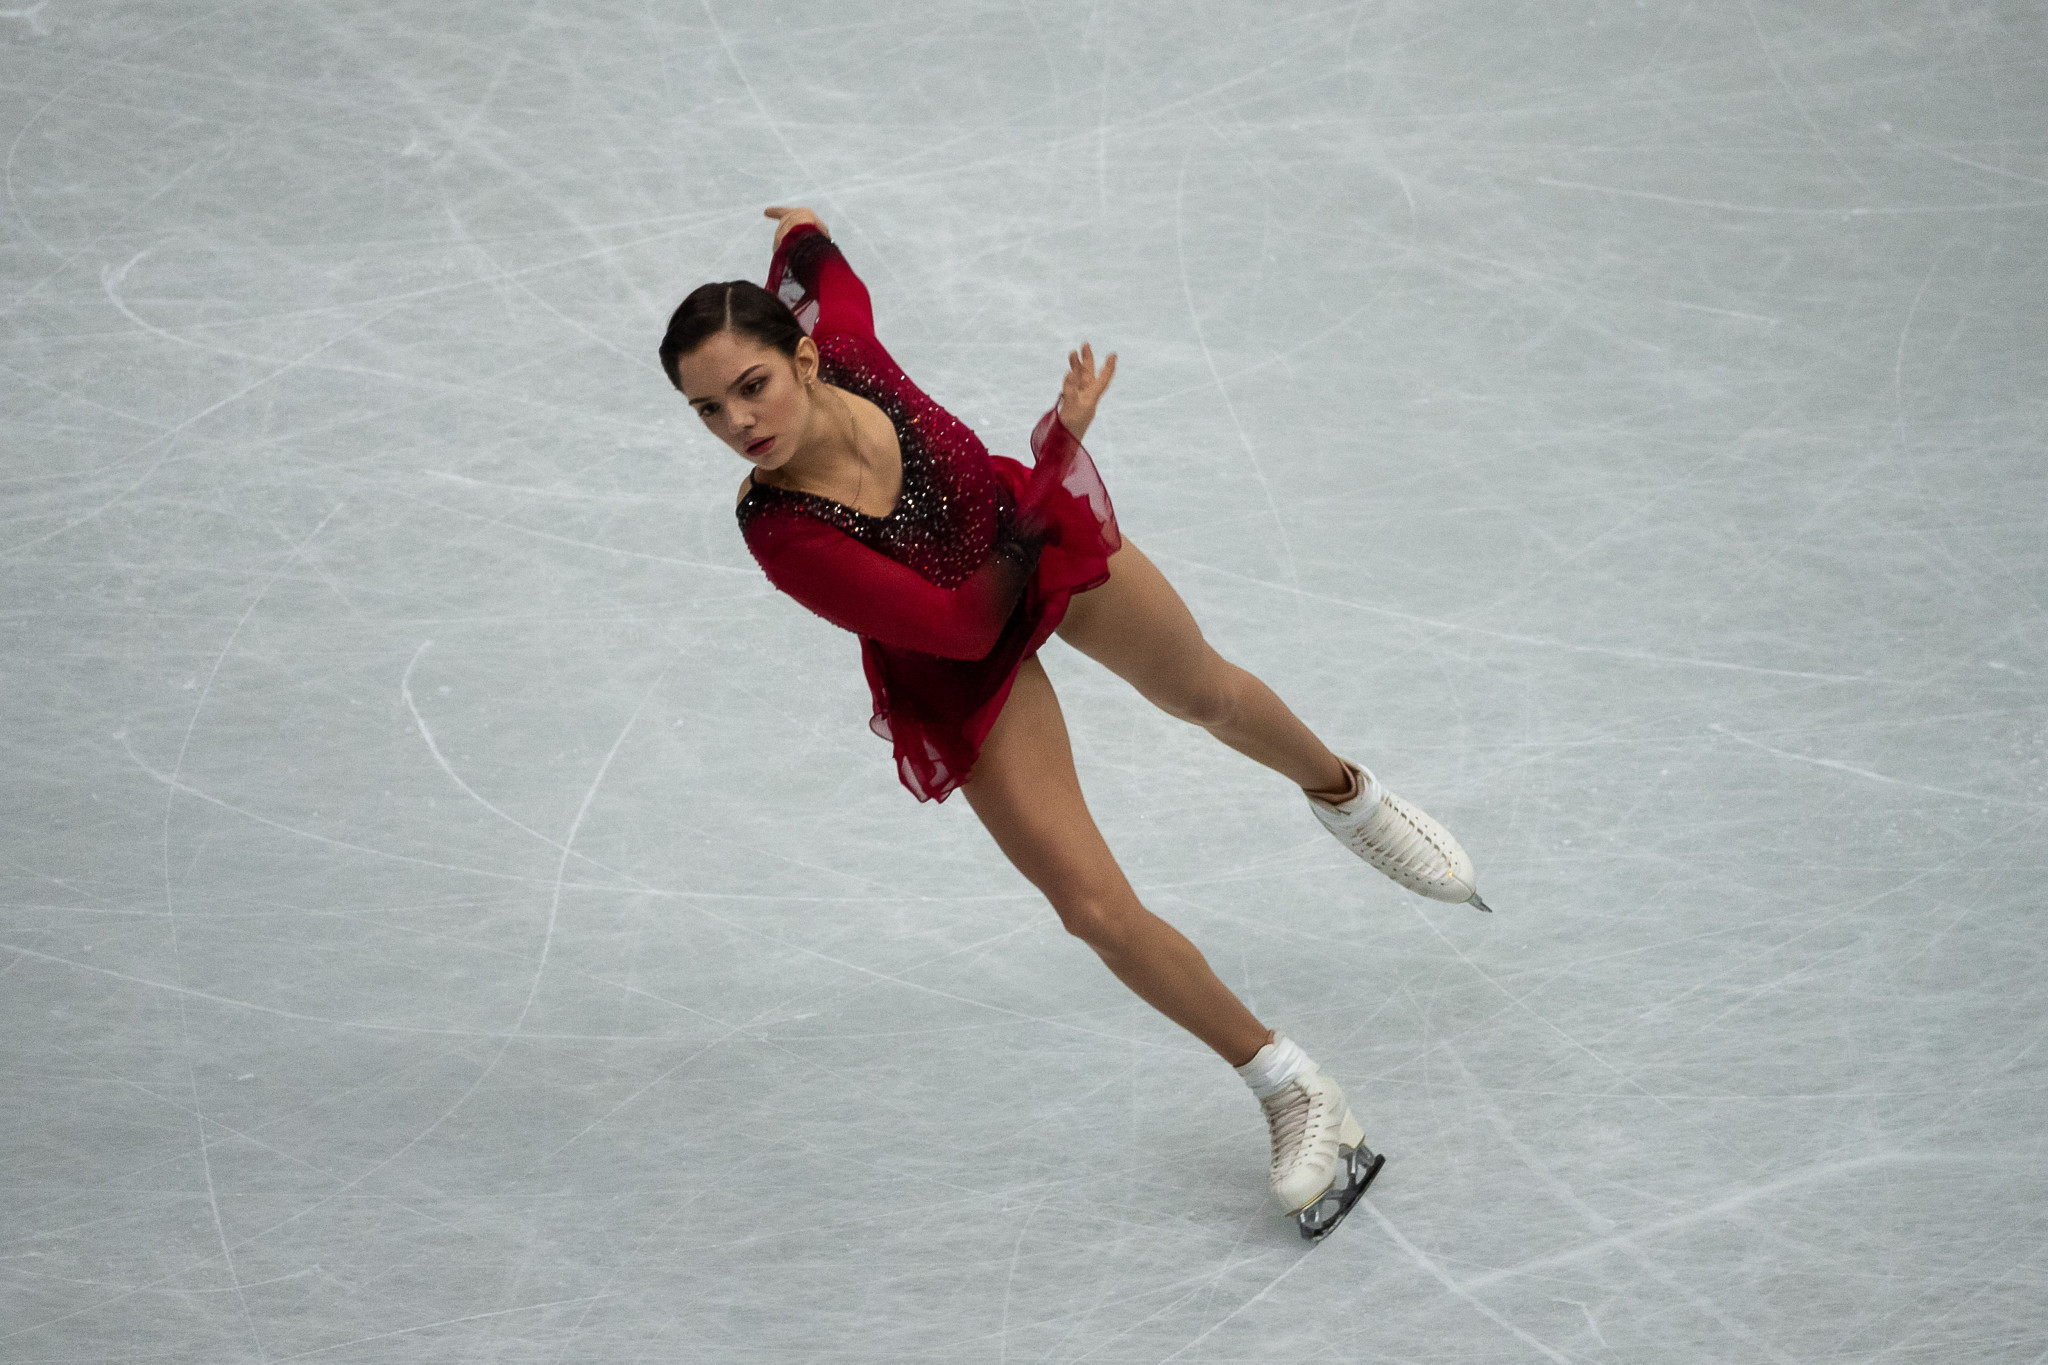 Russian Olympic Committee appoint figure skater Medvedeva as Tokyo 2020 ambassador